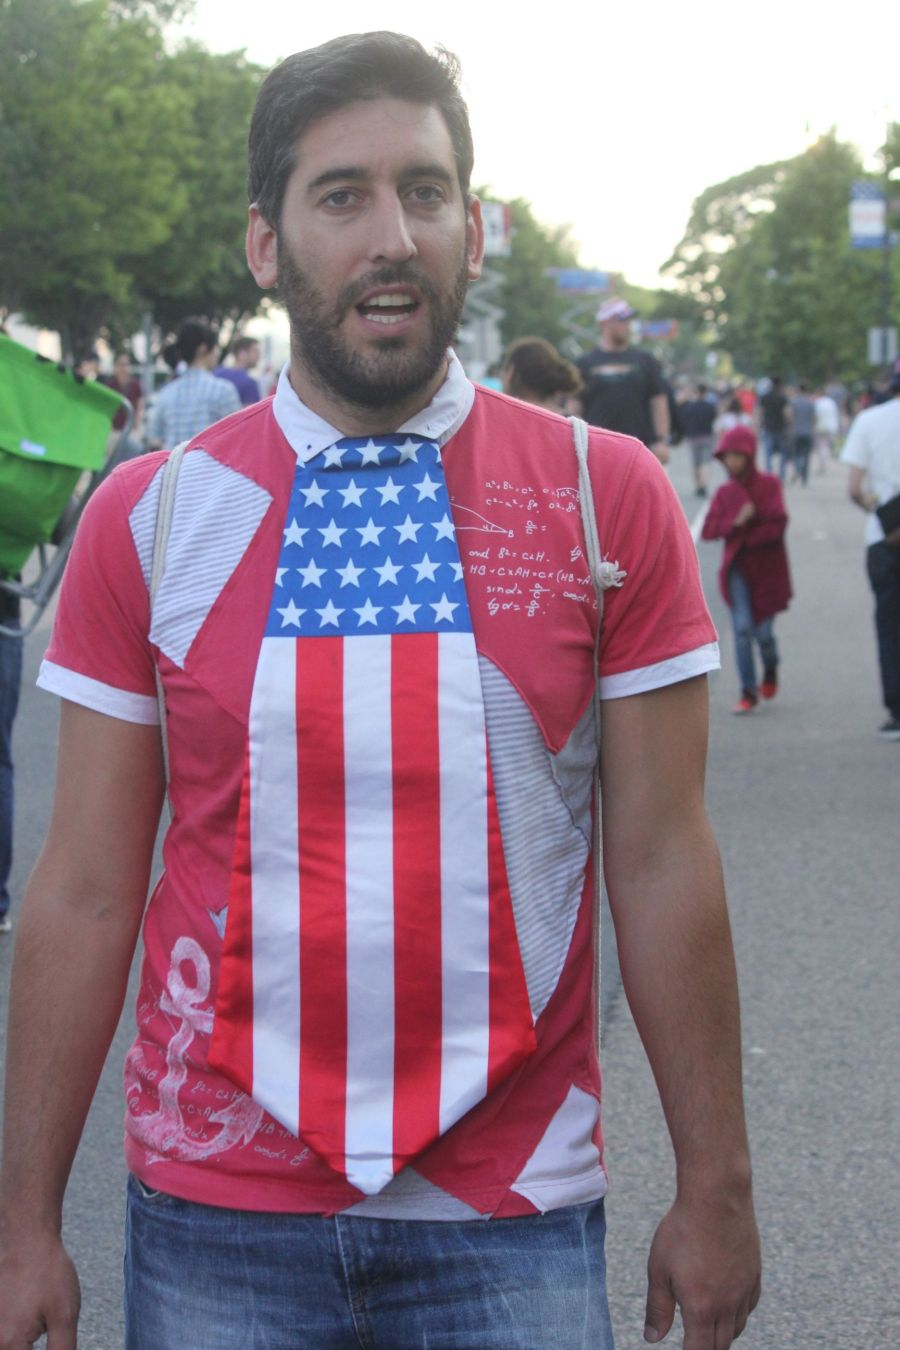 boston july 4th fireworks celebration man with American flag tie